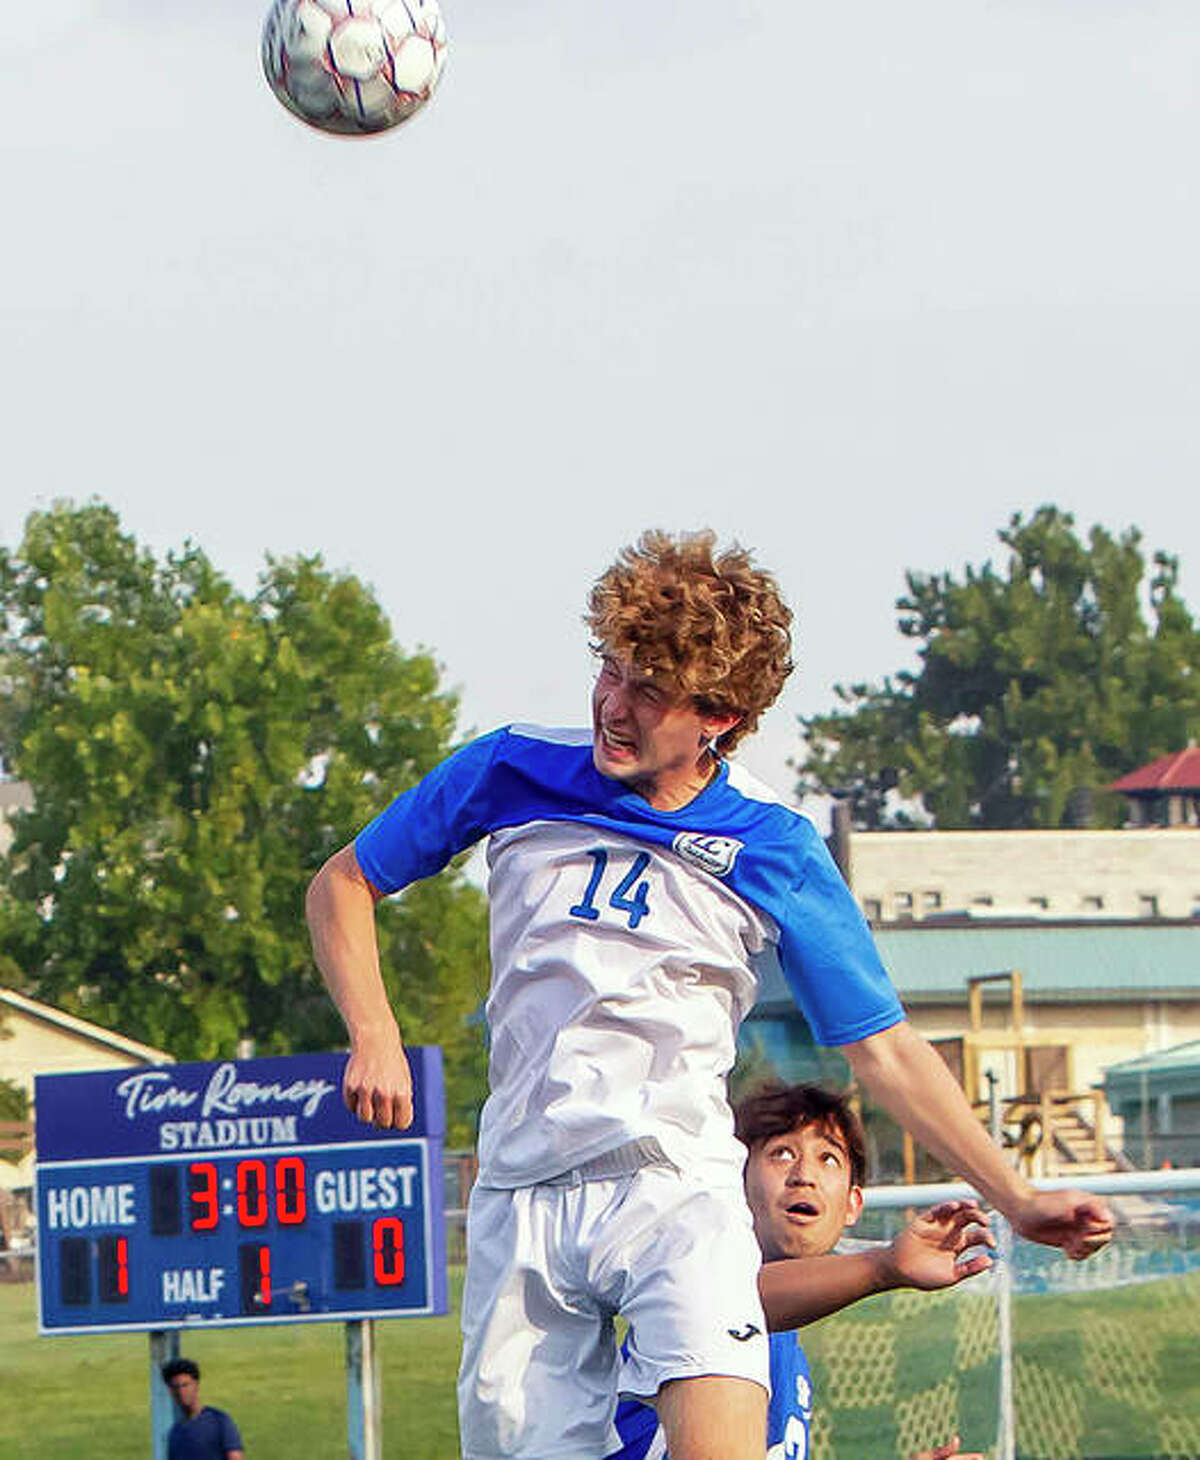 LCCC's Brayden Decker (14), a sophomore from Alton, grits his teeth as he heads the ball away from a Southwestern Illinois College player Wednesday at Rooney Stadium. LCCC won the game 3-0.